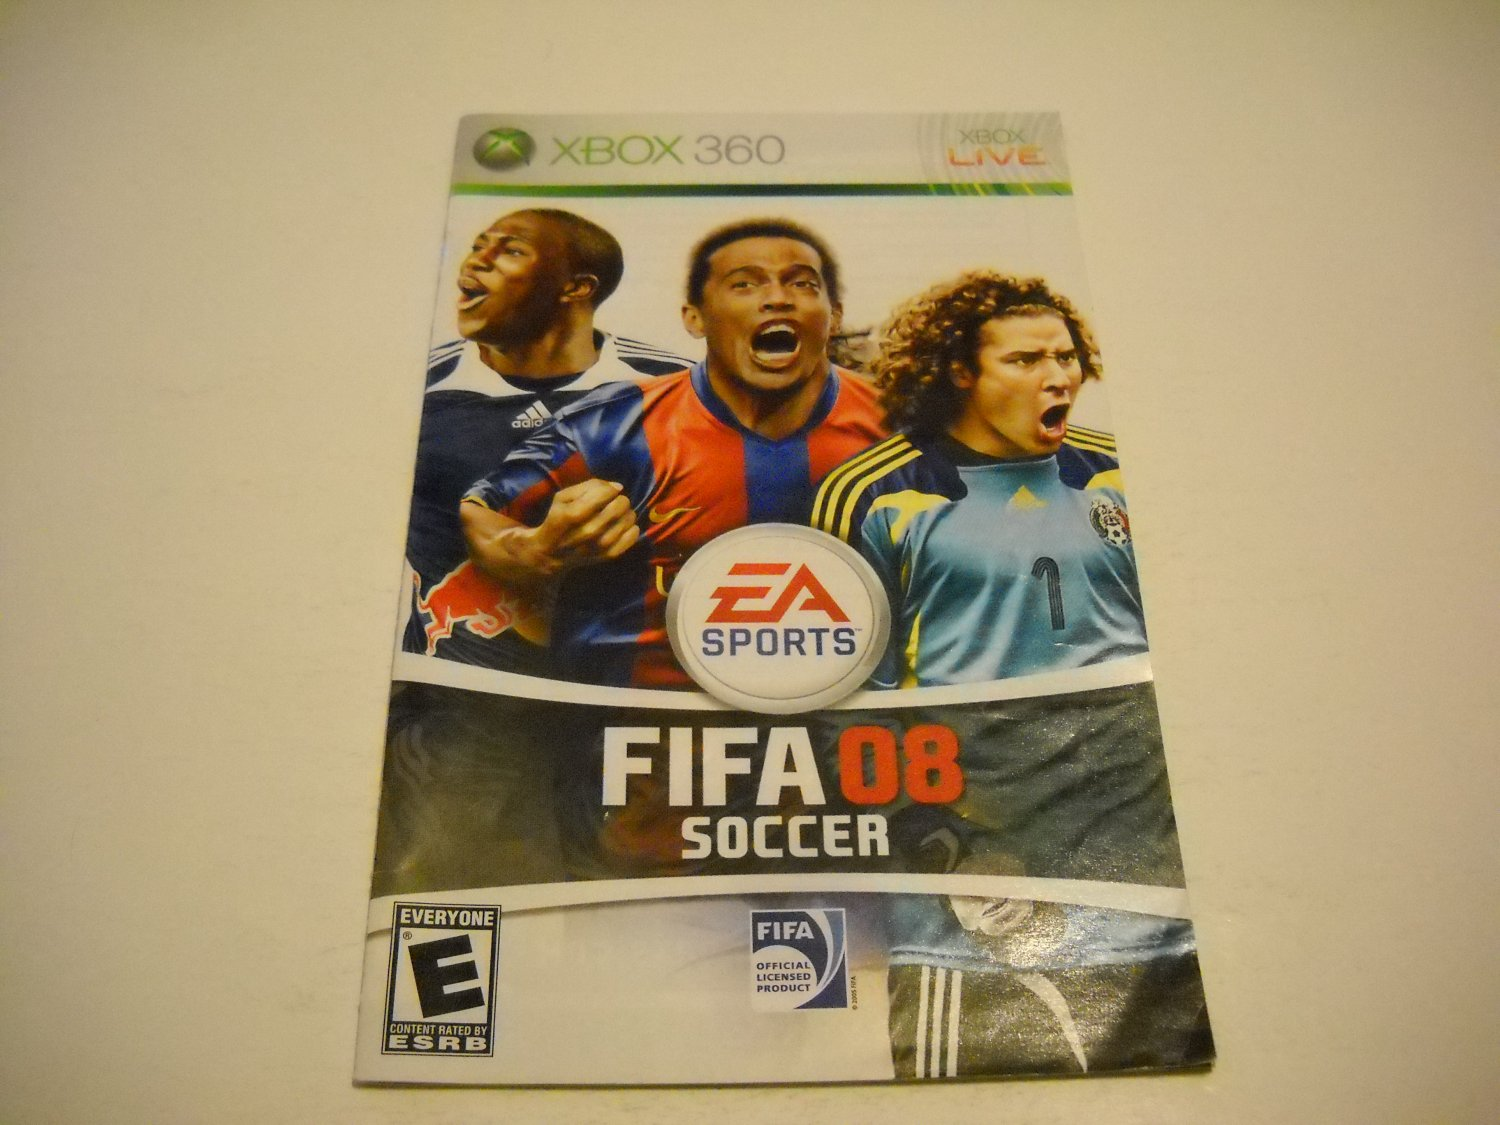 Manual ONLY ~  for FIFA Soccer 08   - Xbox 360 Instruction Booklet